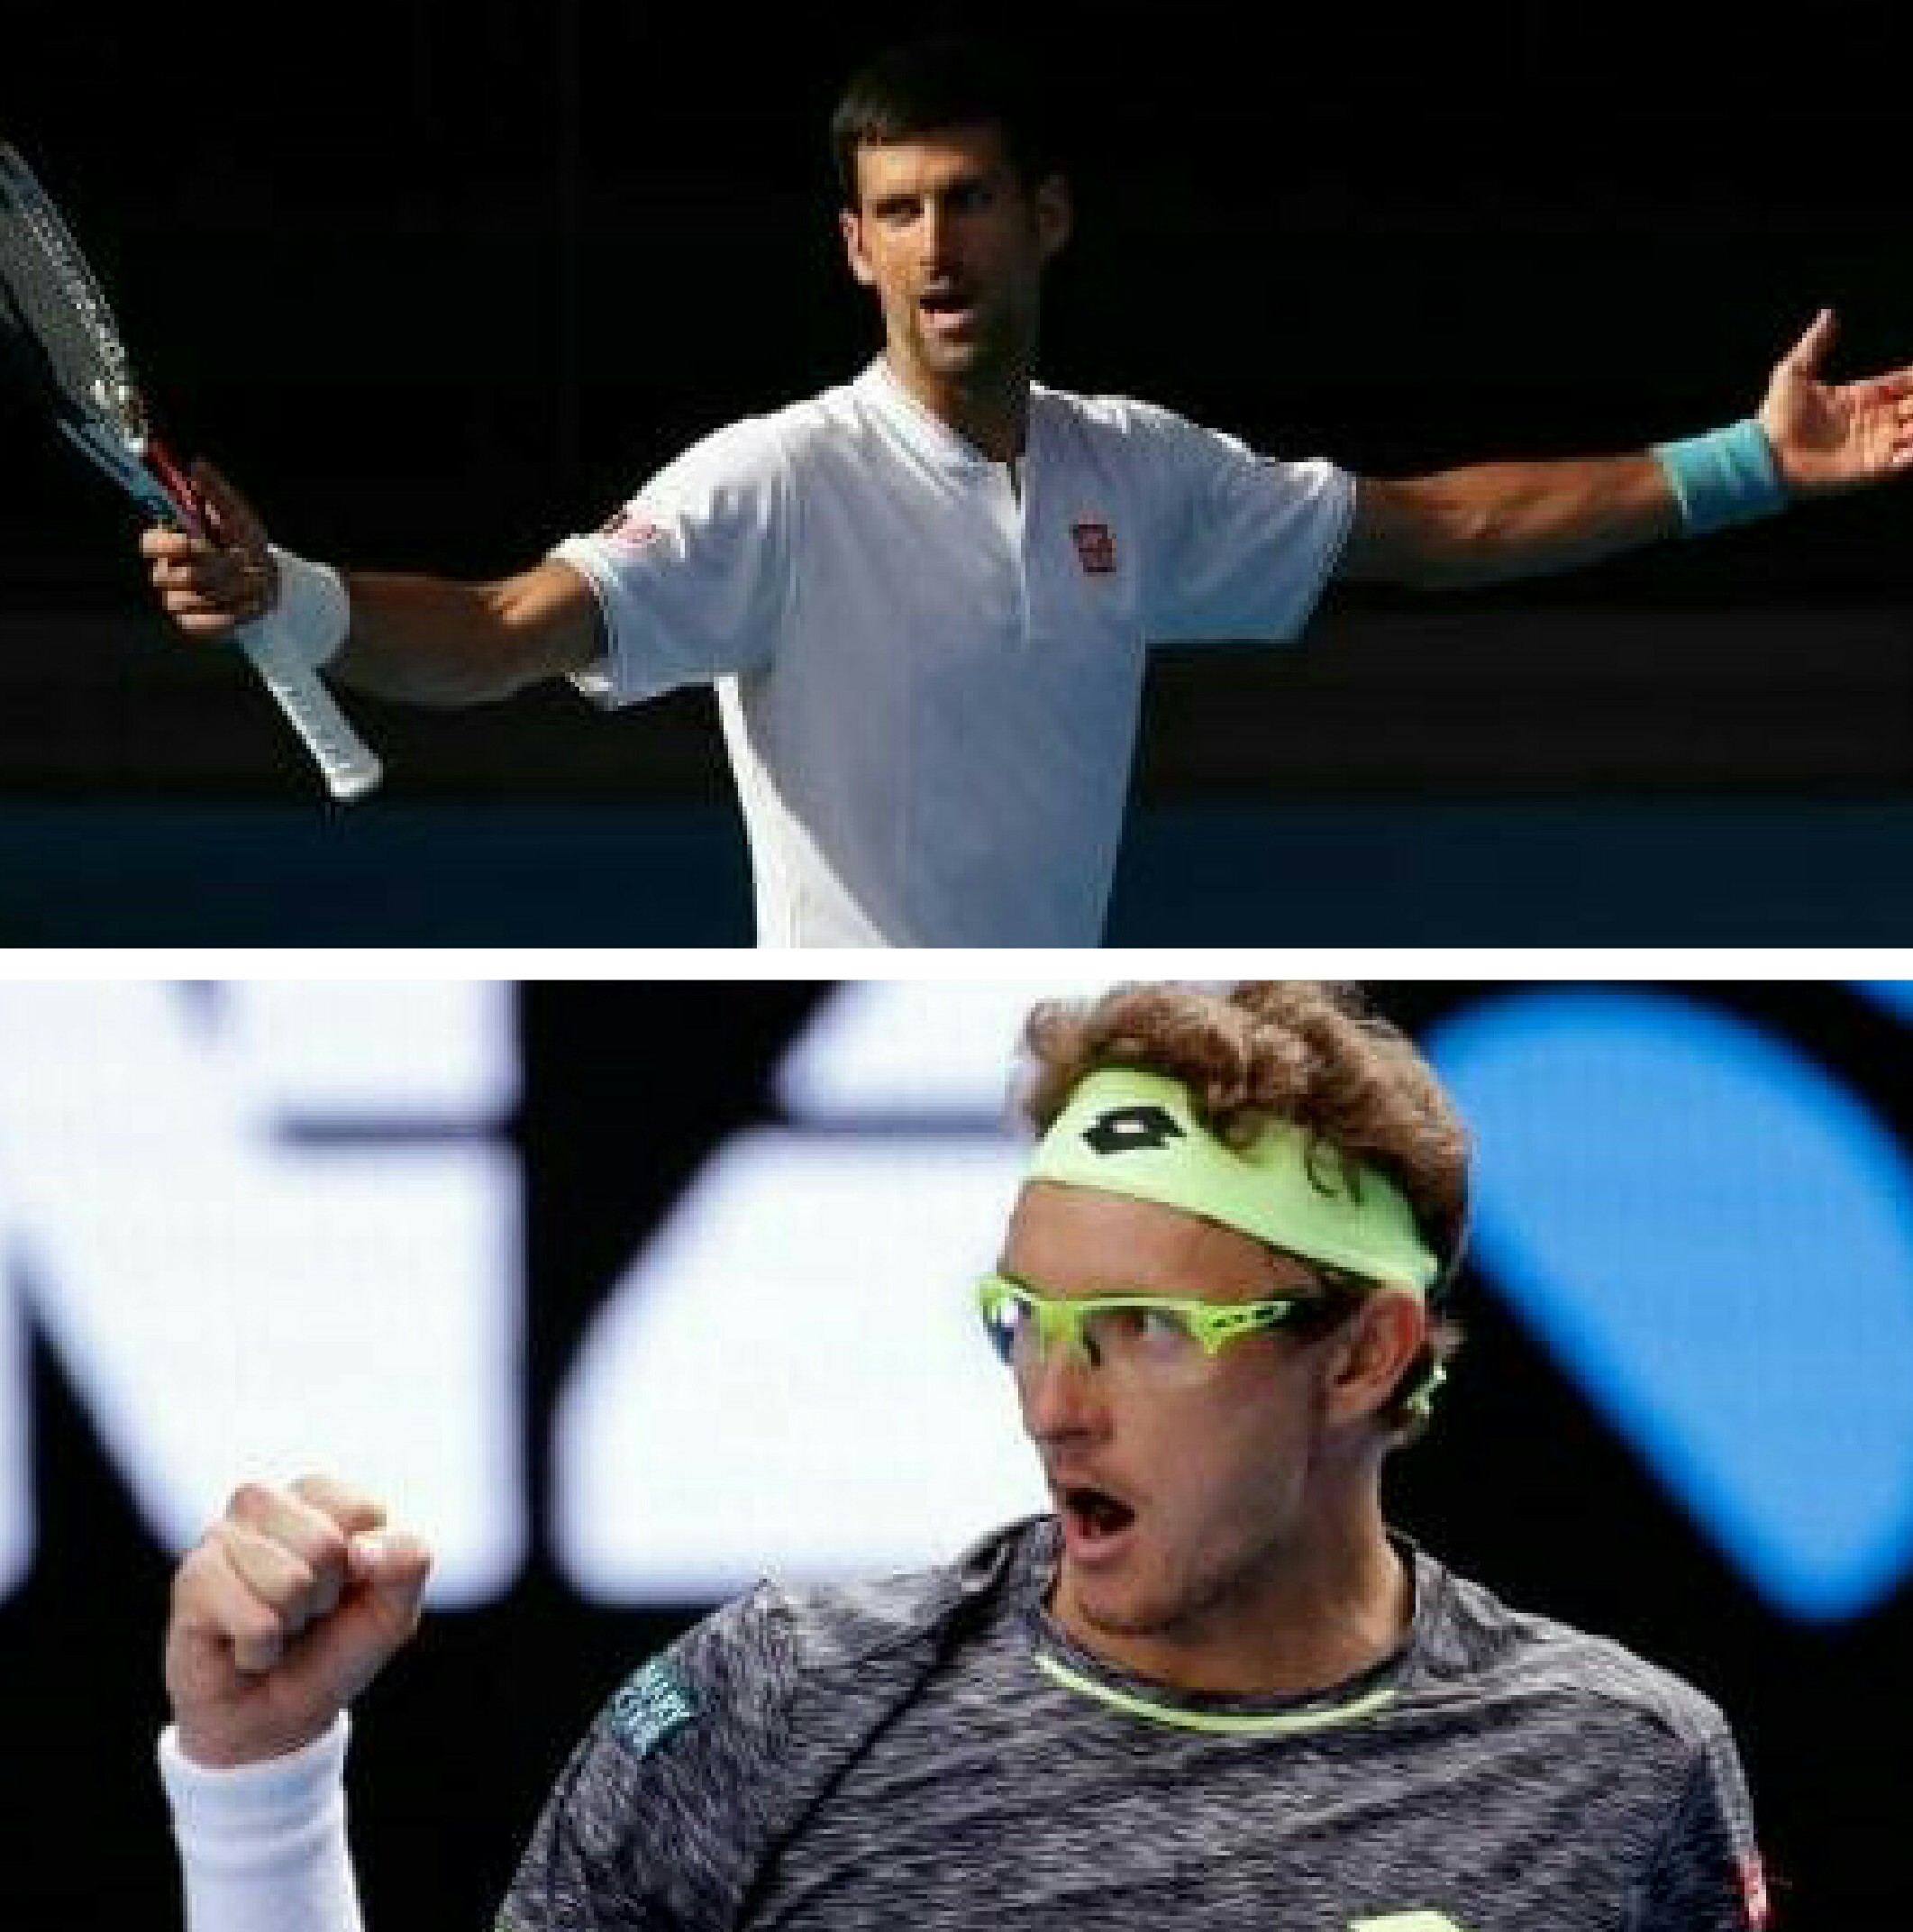 Australian Open: Defending Champion Djokovic Sent Packing By 117th Ranked Istomin